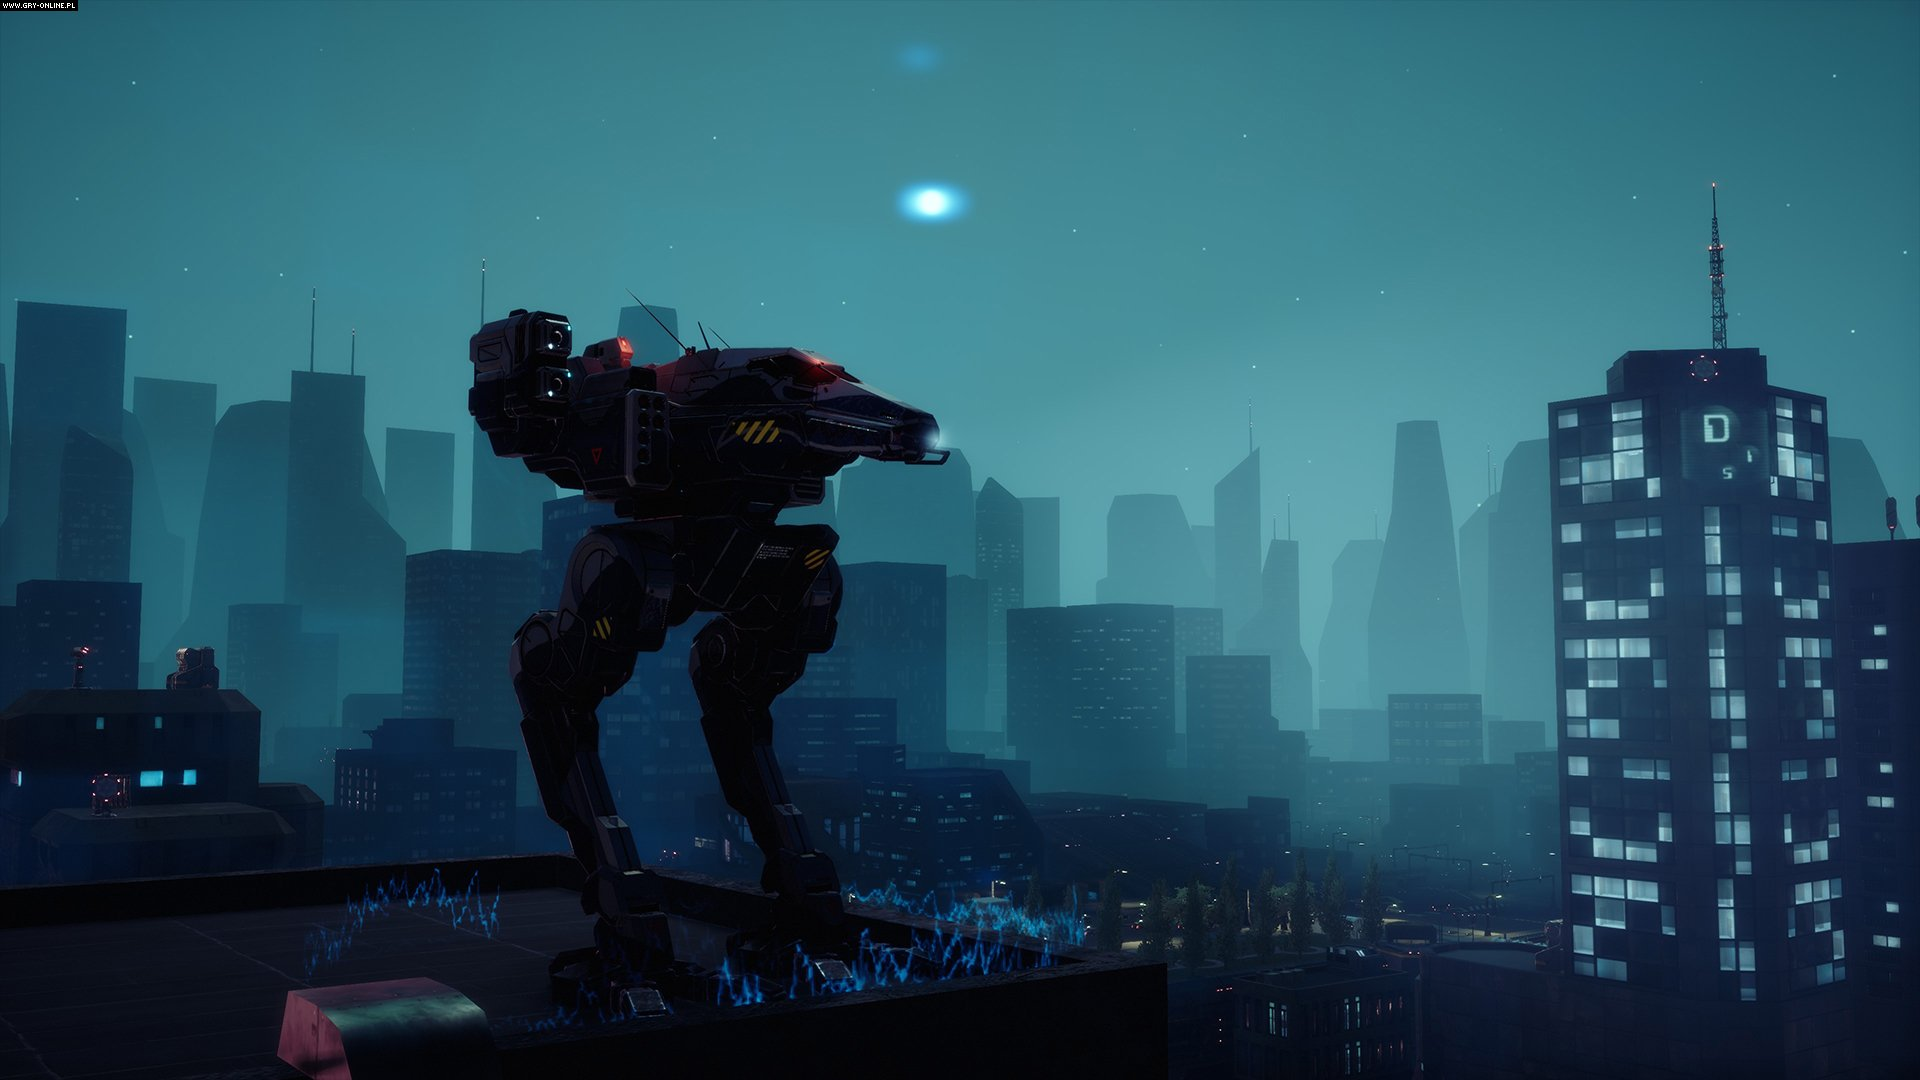 BattleTech: Urban Warfare PC Games Image 5/14, Harebrained Schemes, Paradox Interactive